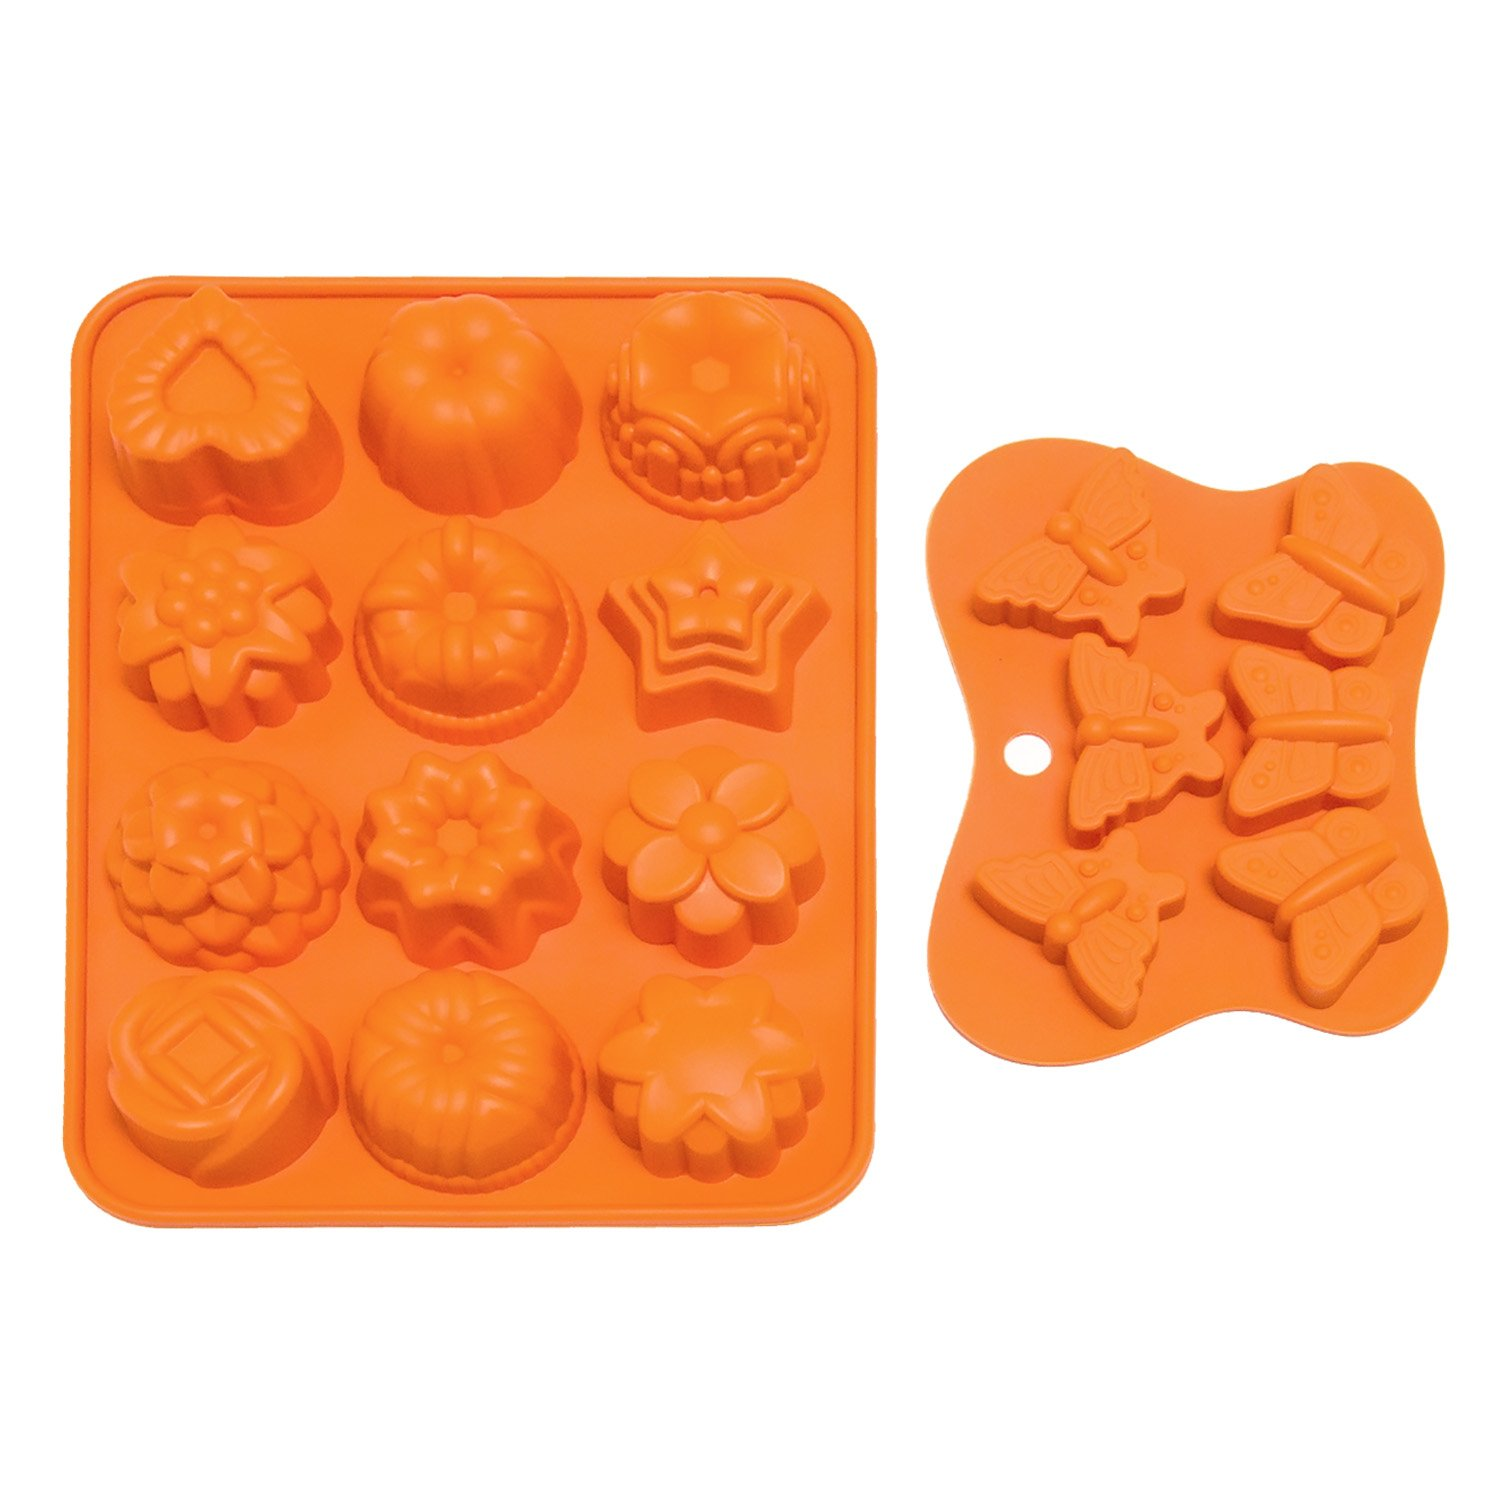 Fondant Molds, Boieo Non-stick Flower & Butterfly Silicone Baking Mold for Cake, Candy, Chocolate, Jelly, Fondant and Soap Making (Set of 2)